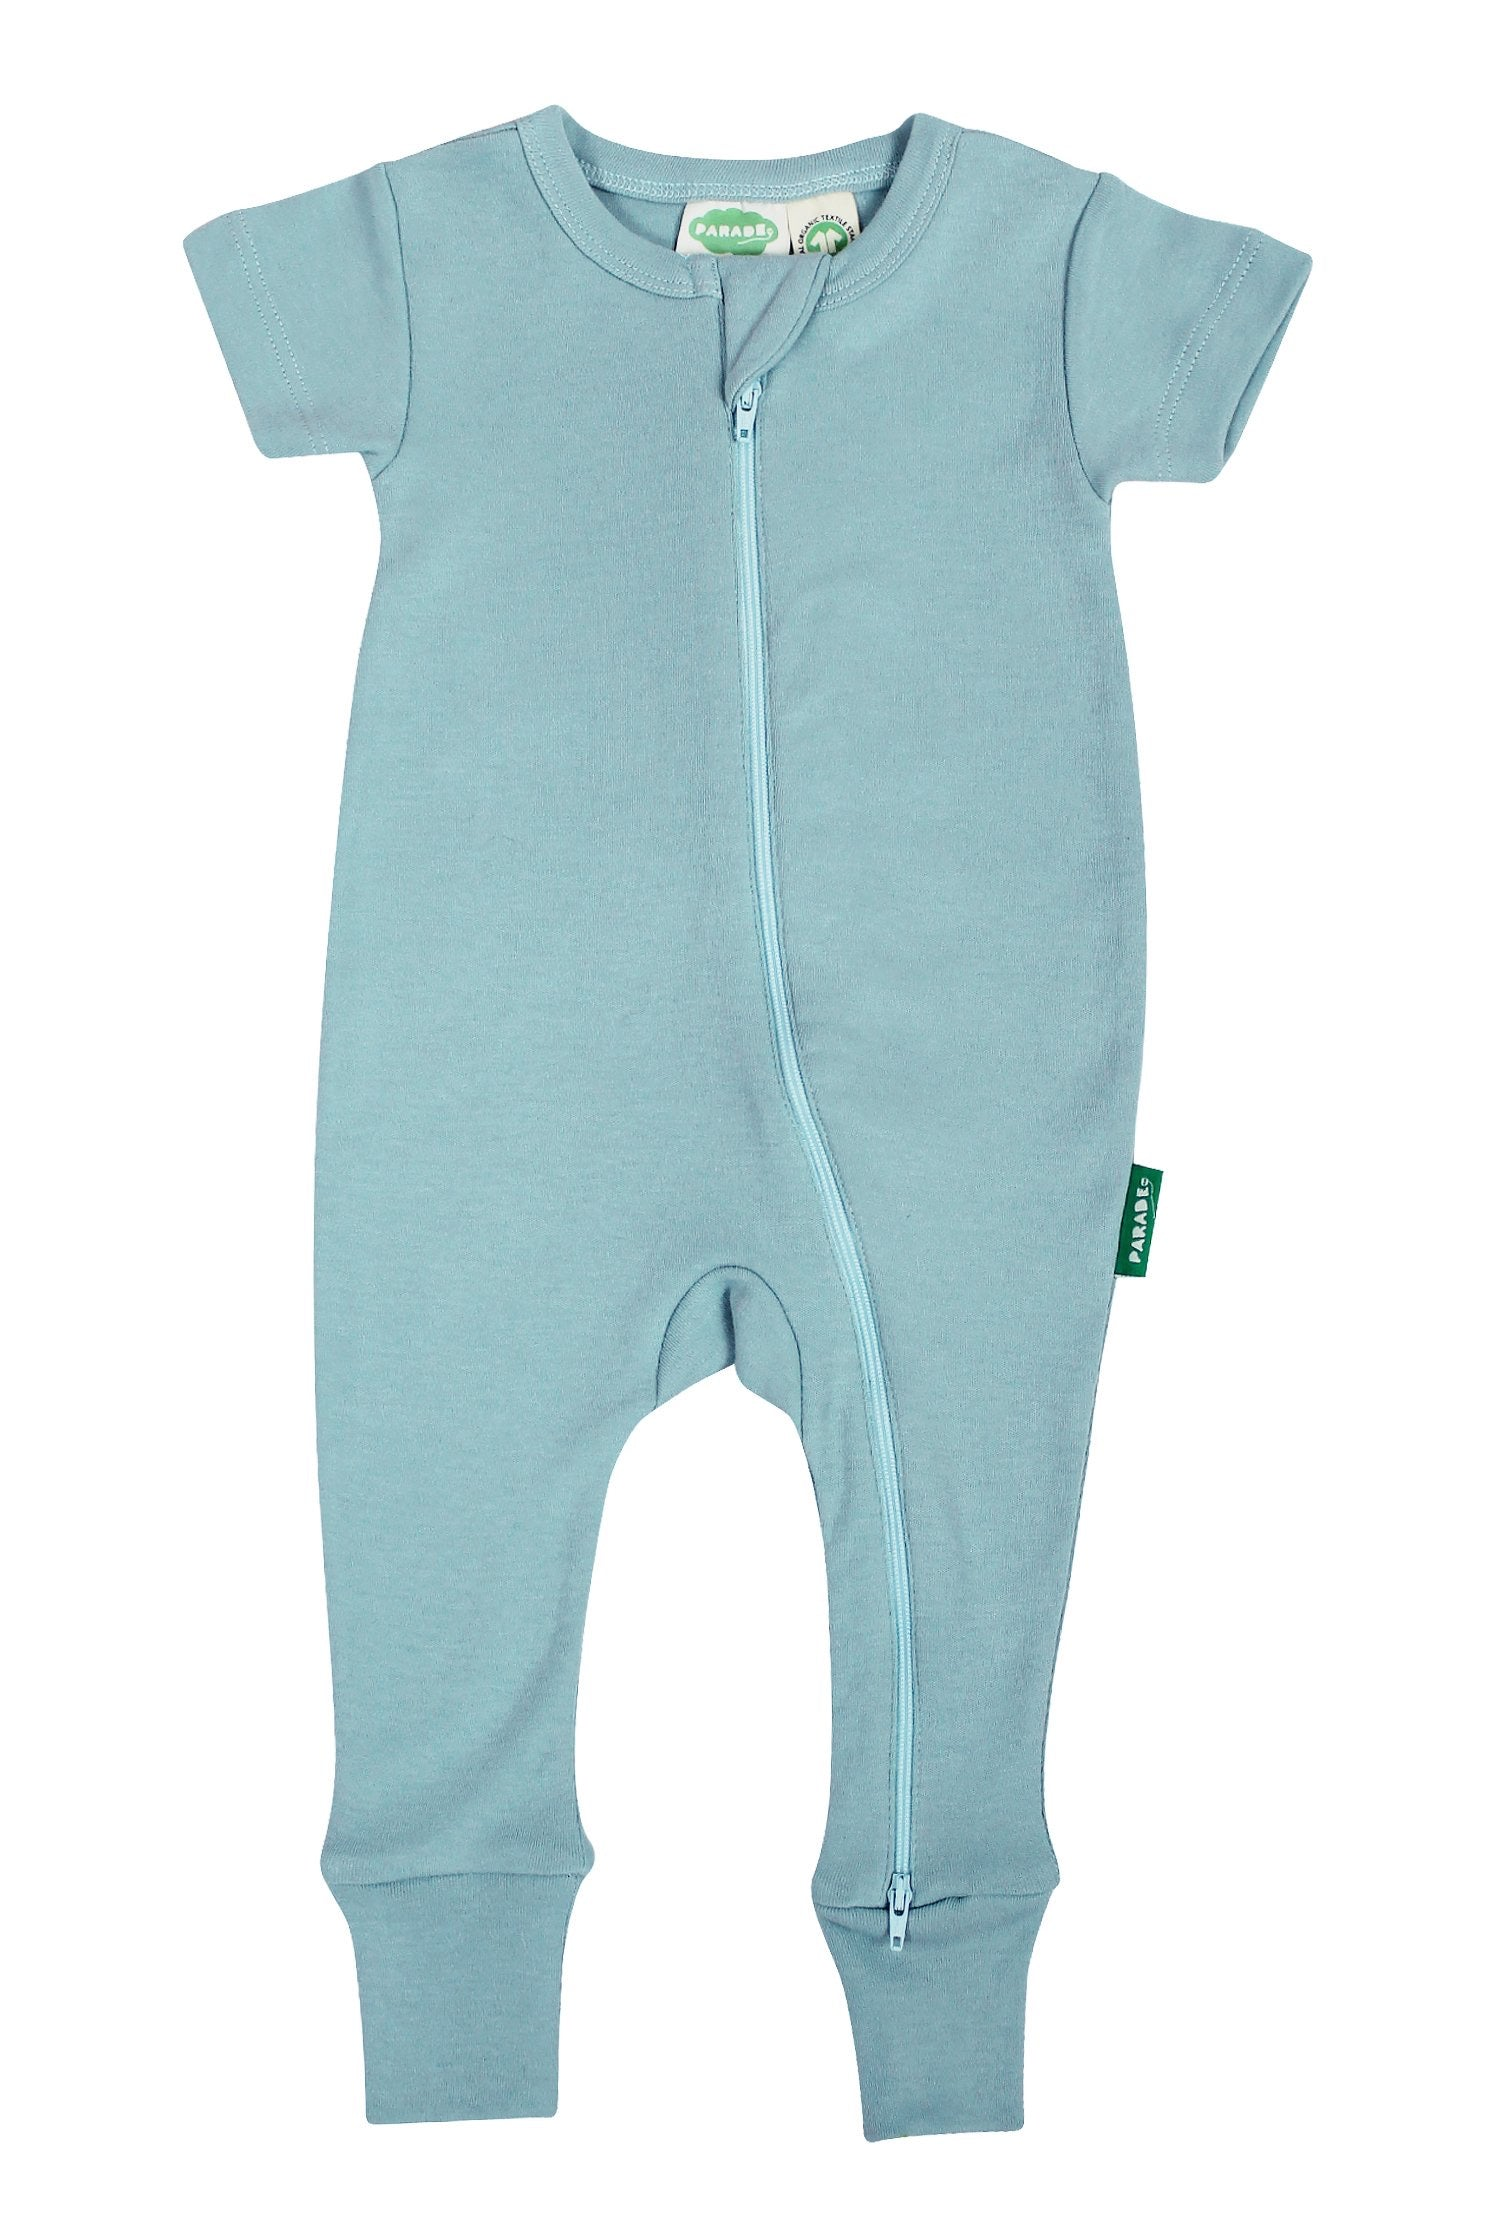 2 Way Zip Baby Romper - Sky Blue